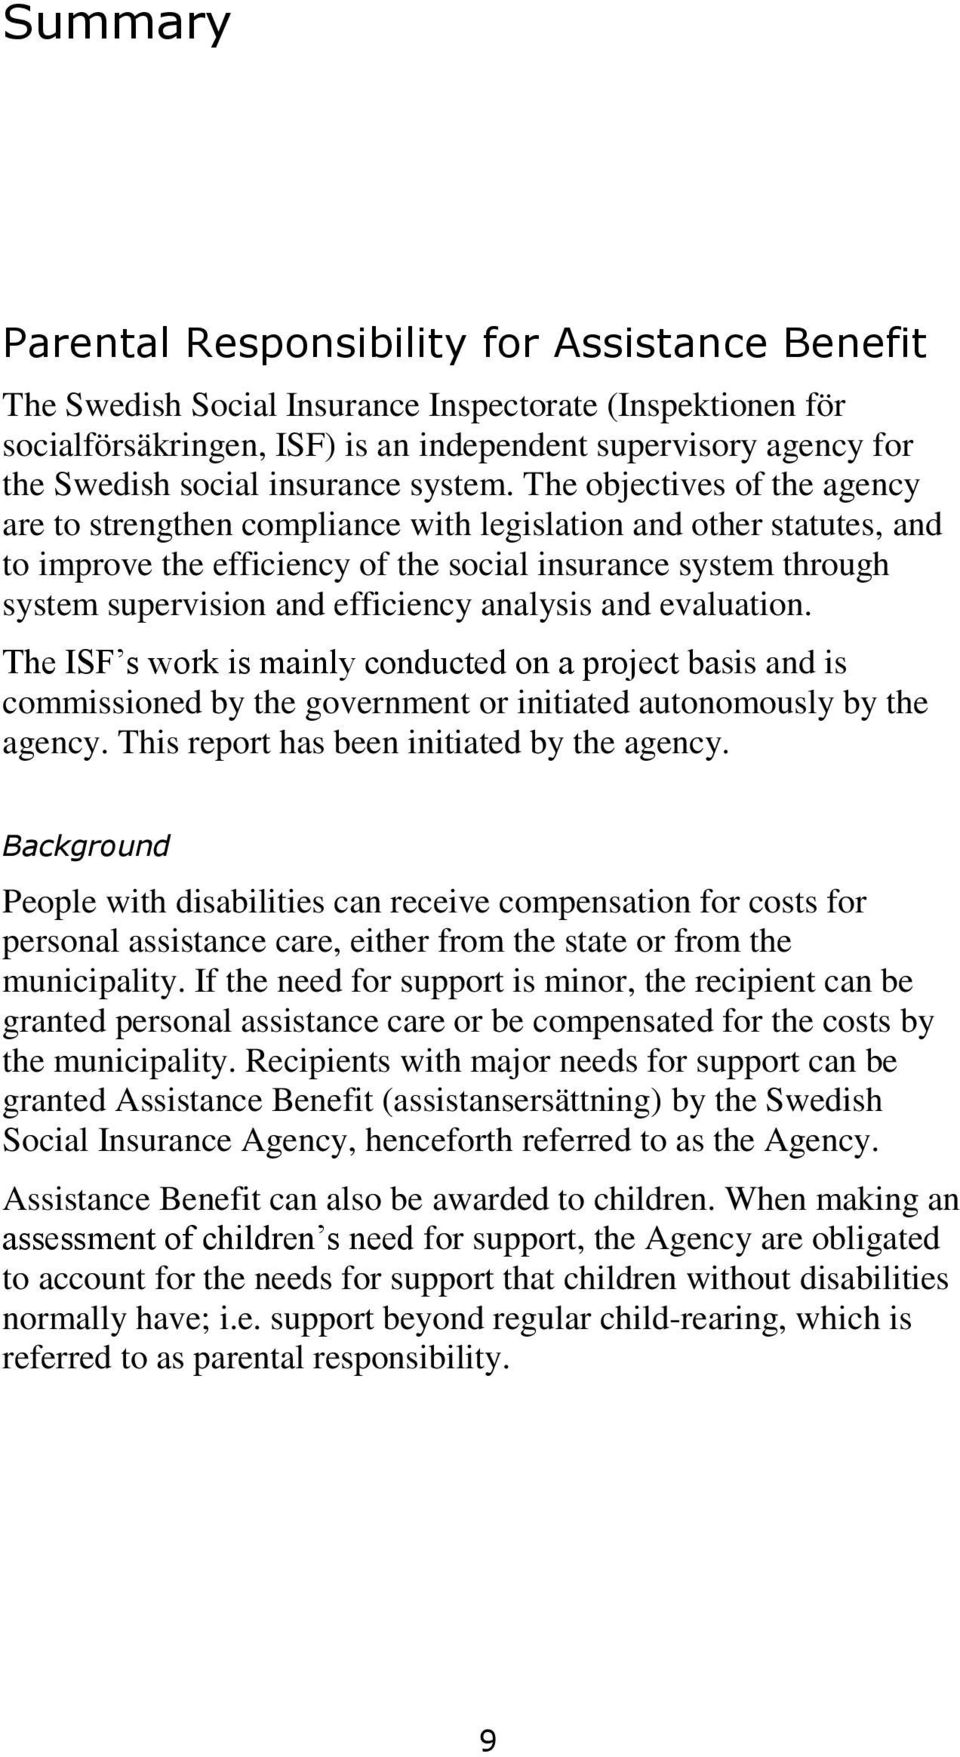 The objectives of the agency are to strengthen compliance with legislation and other statutes, and to improve the efficiency of the social insurance system through system supervision and efficiency